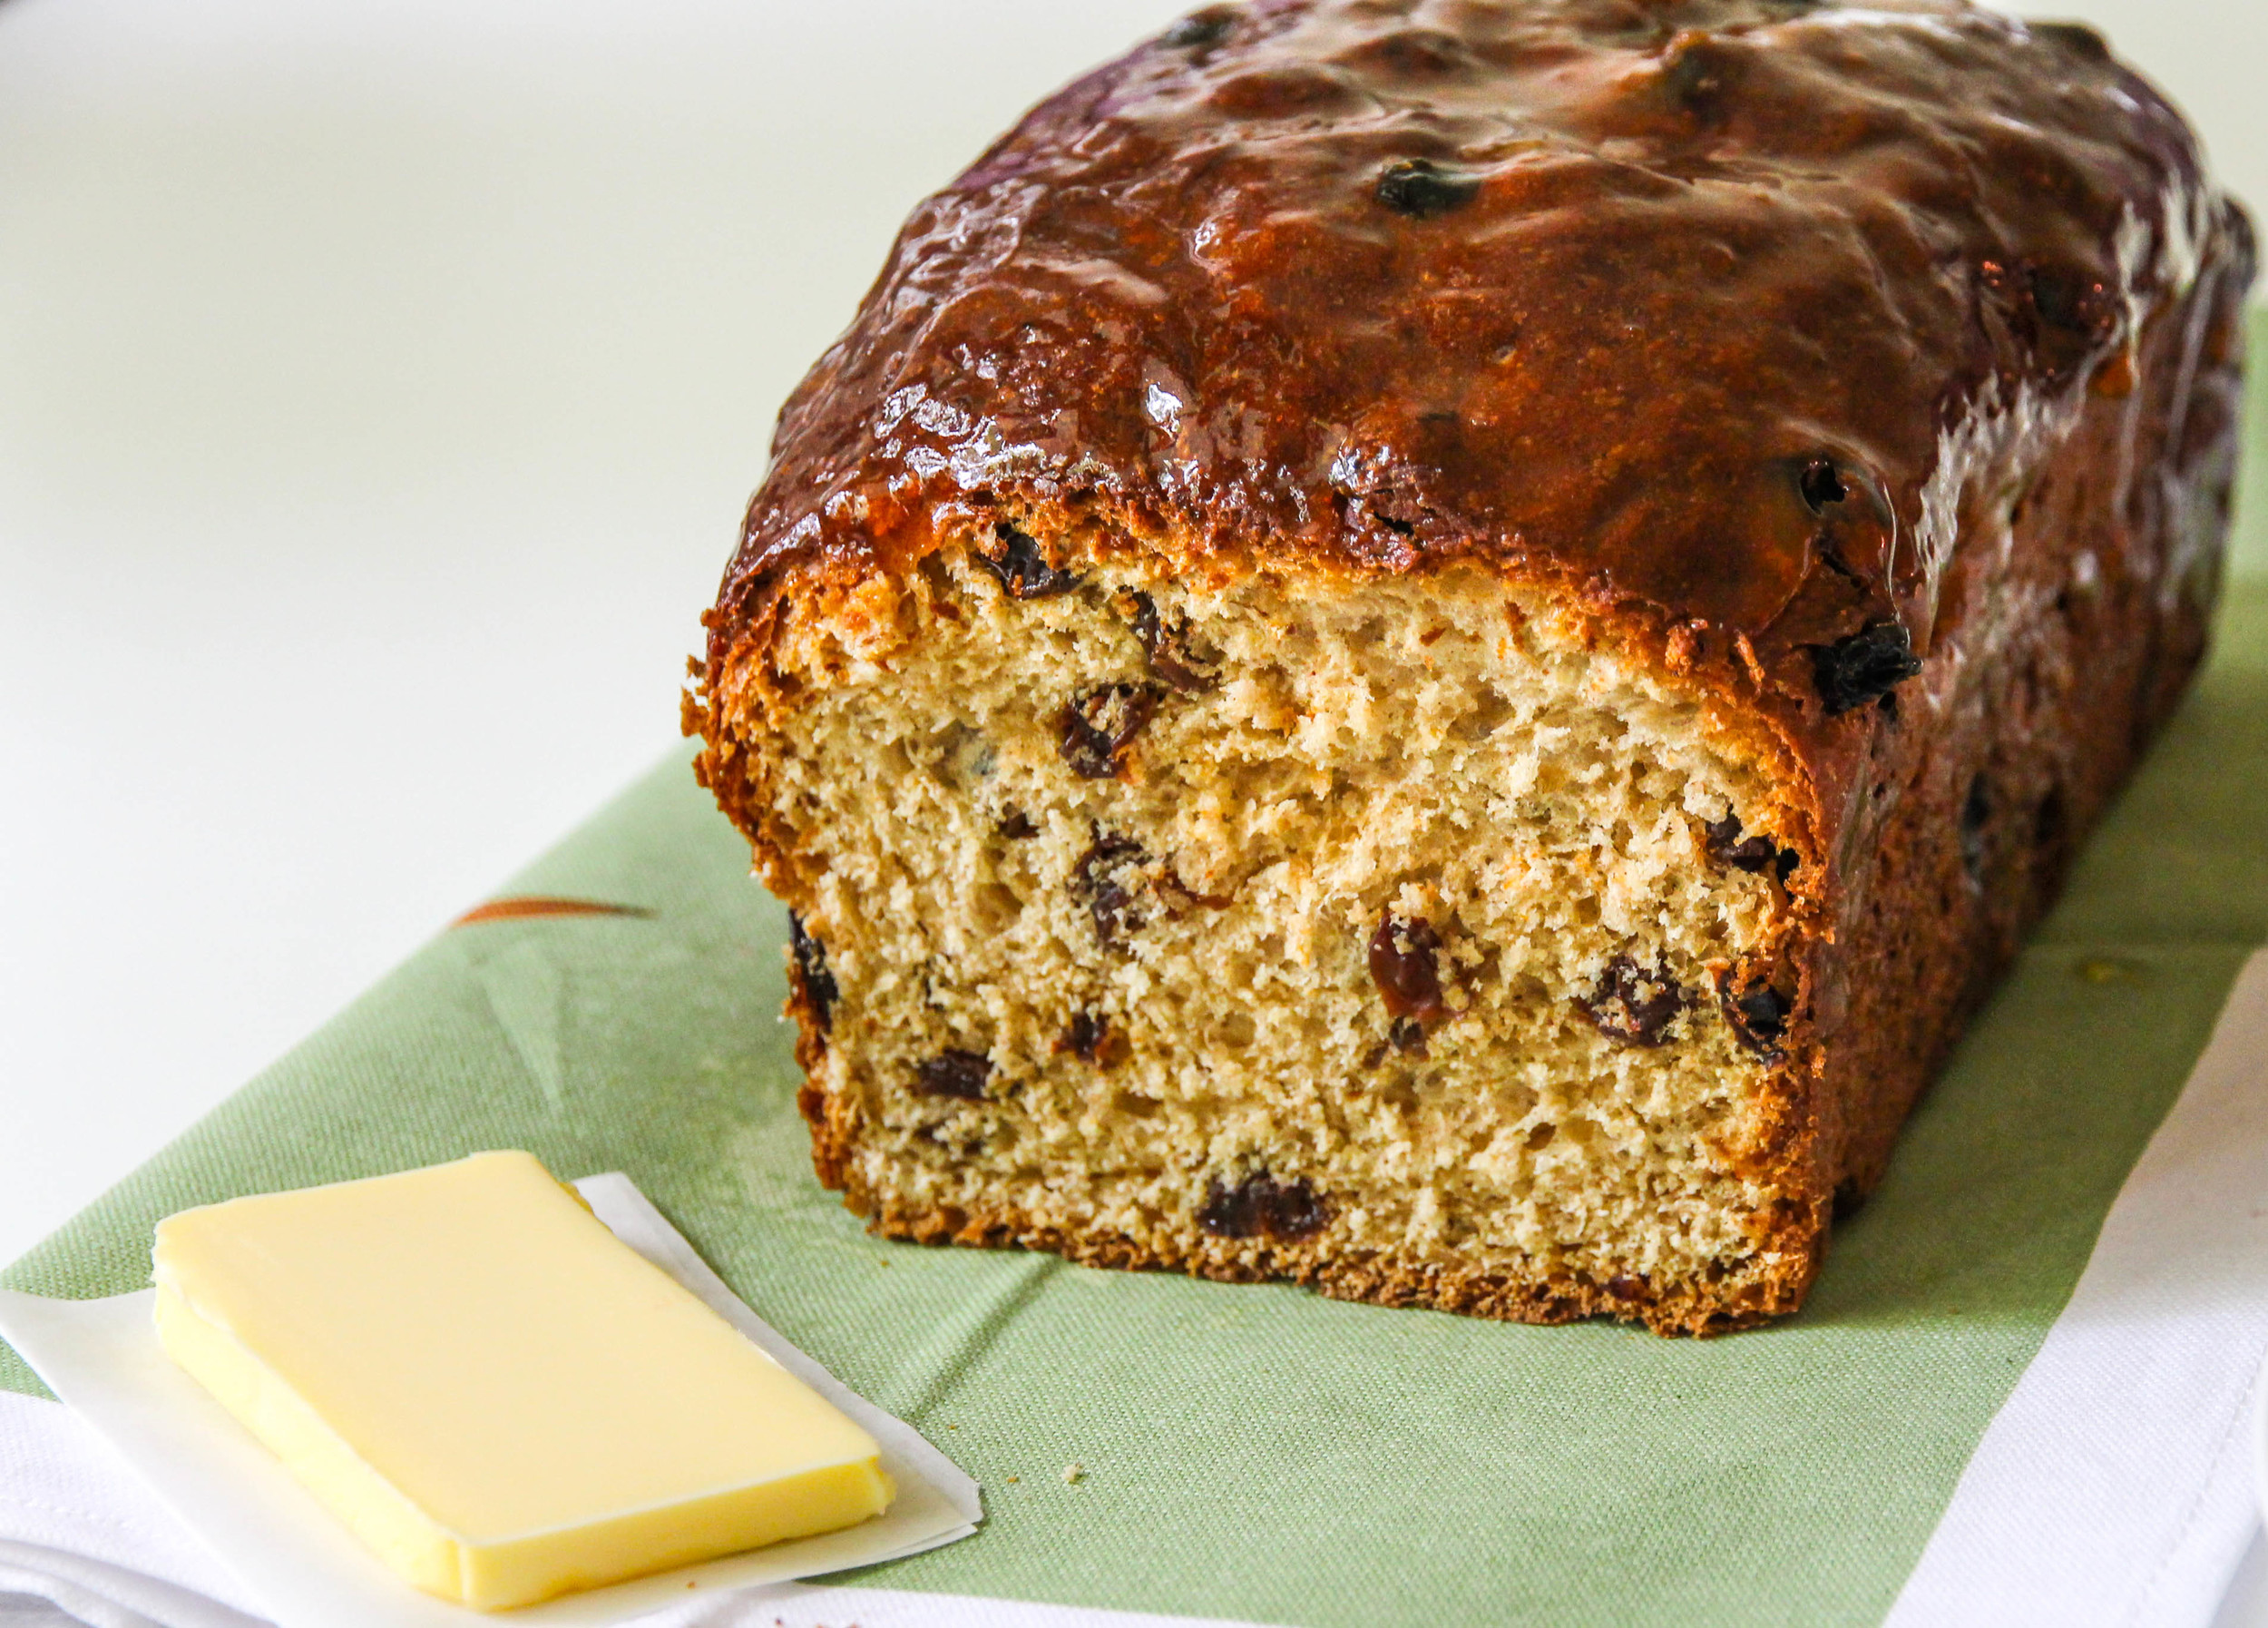 Raisin & Cinnamon Loaf